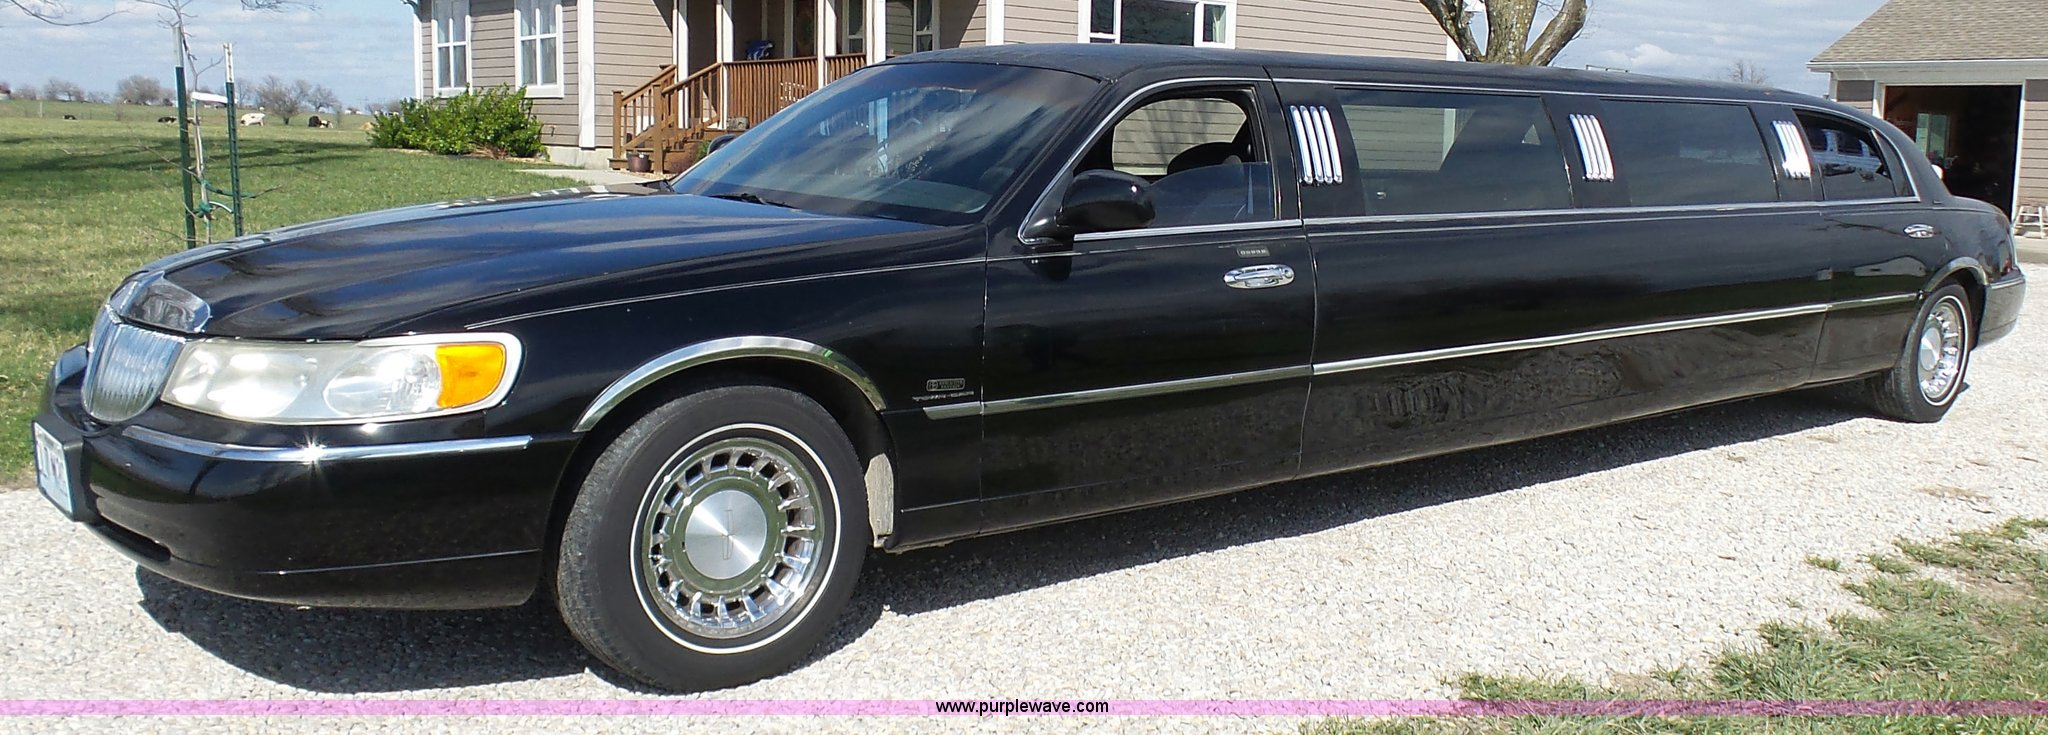 2000 Lincoln Town Car Limousine Item K4302 Sold April 2